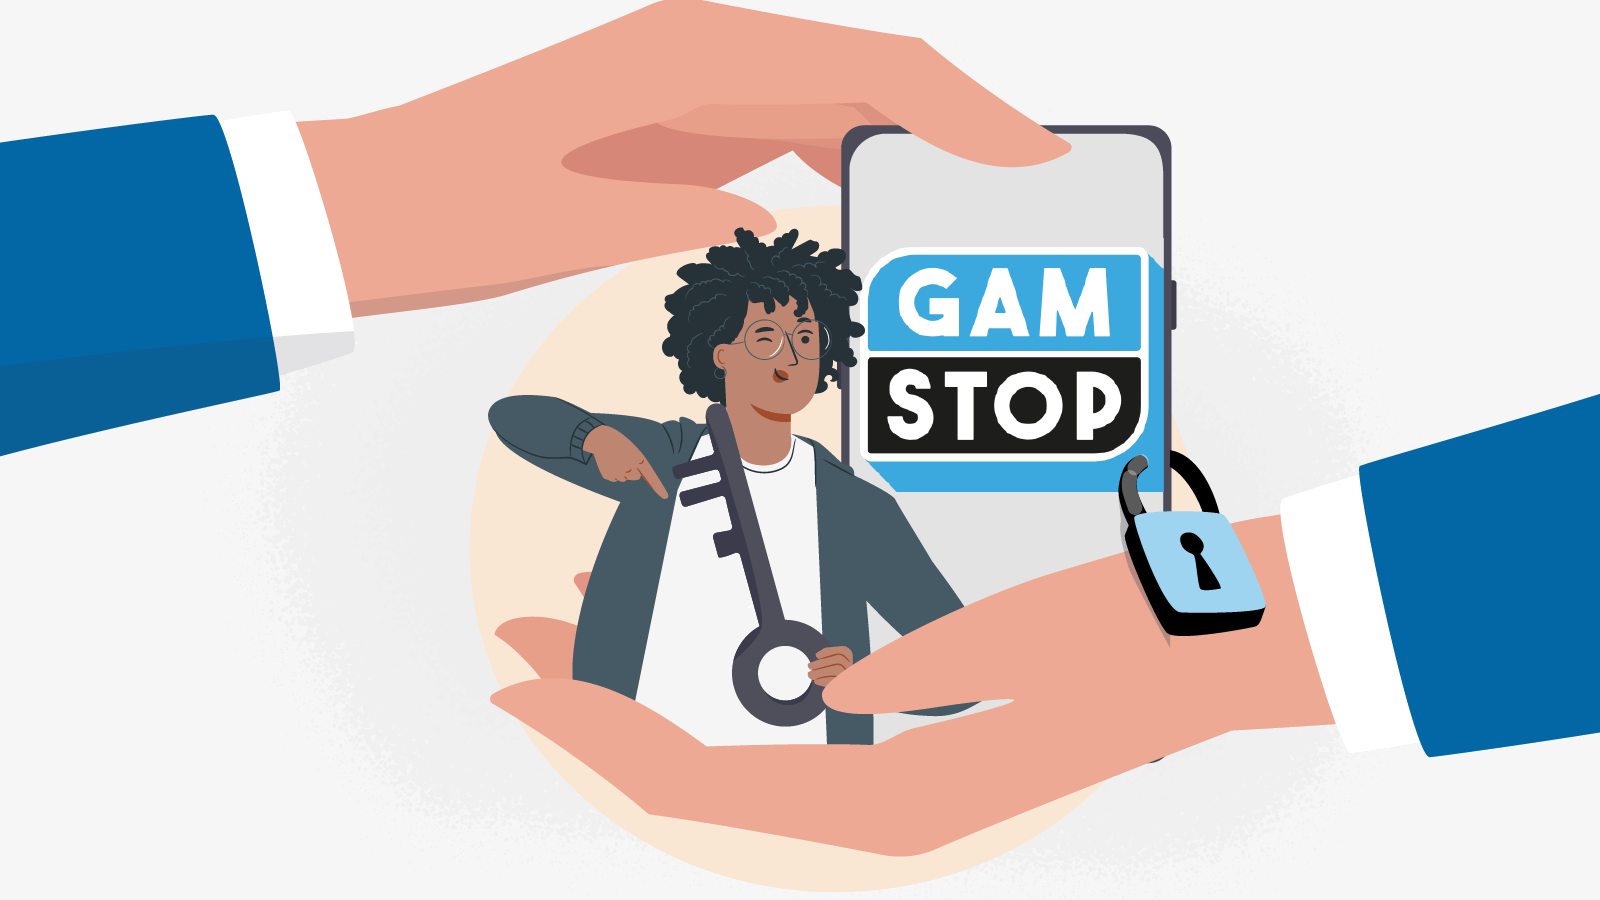 How to play safe with GAMSTOP?